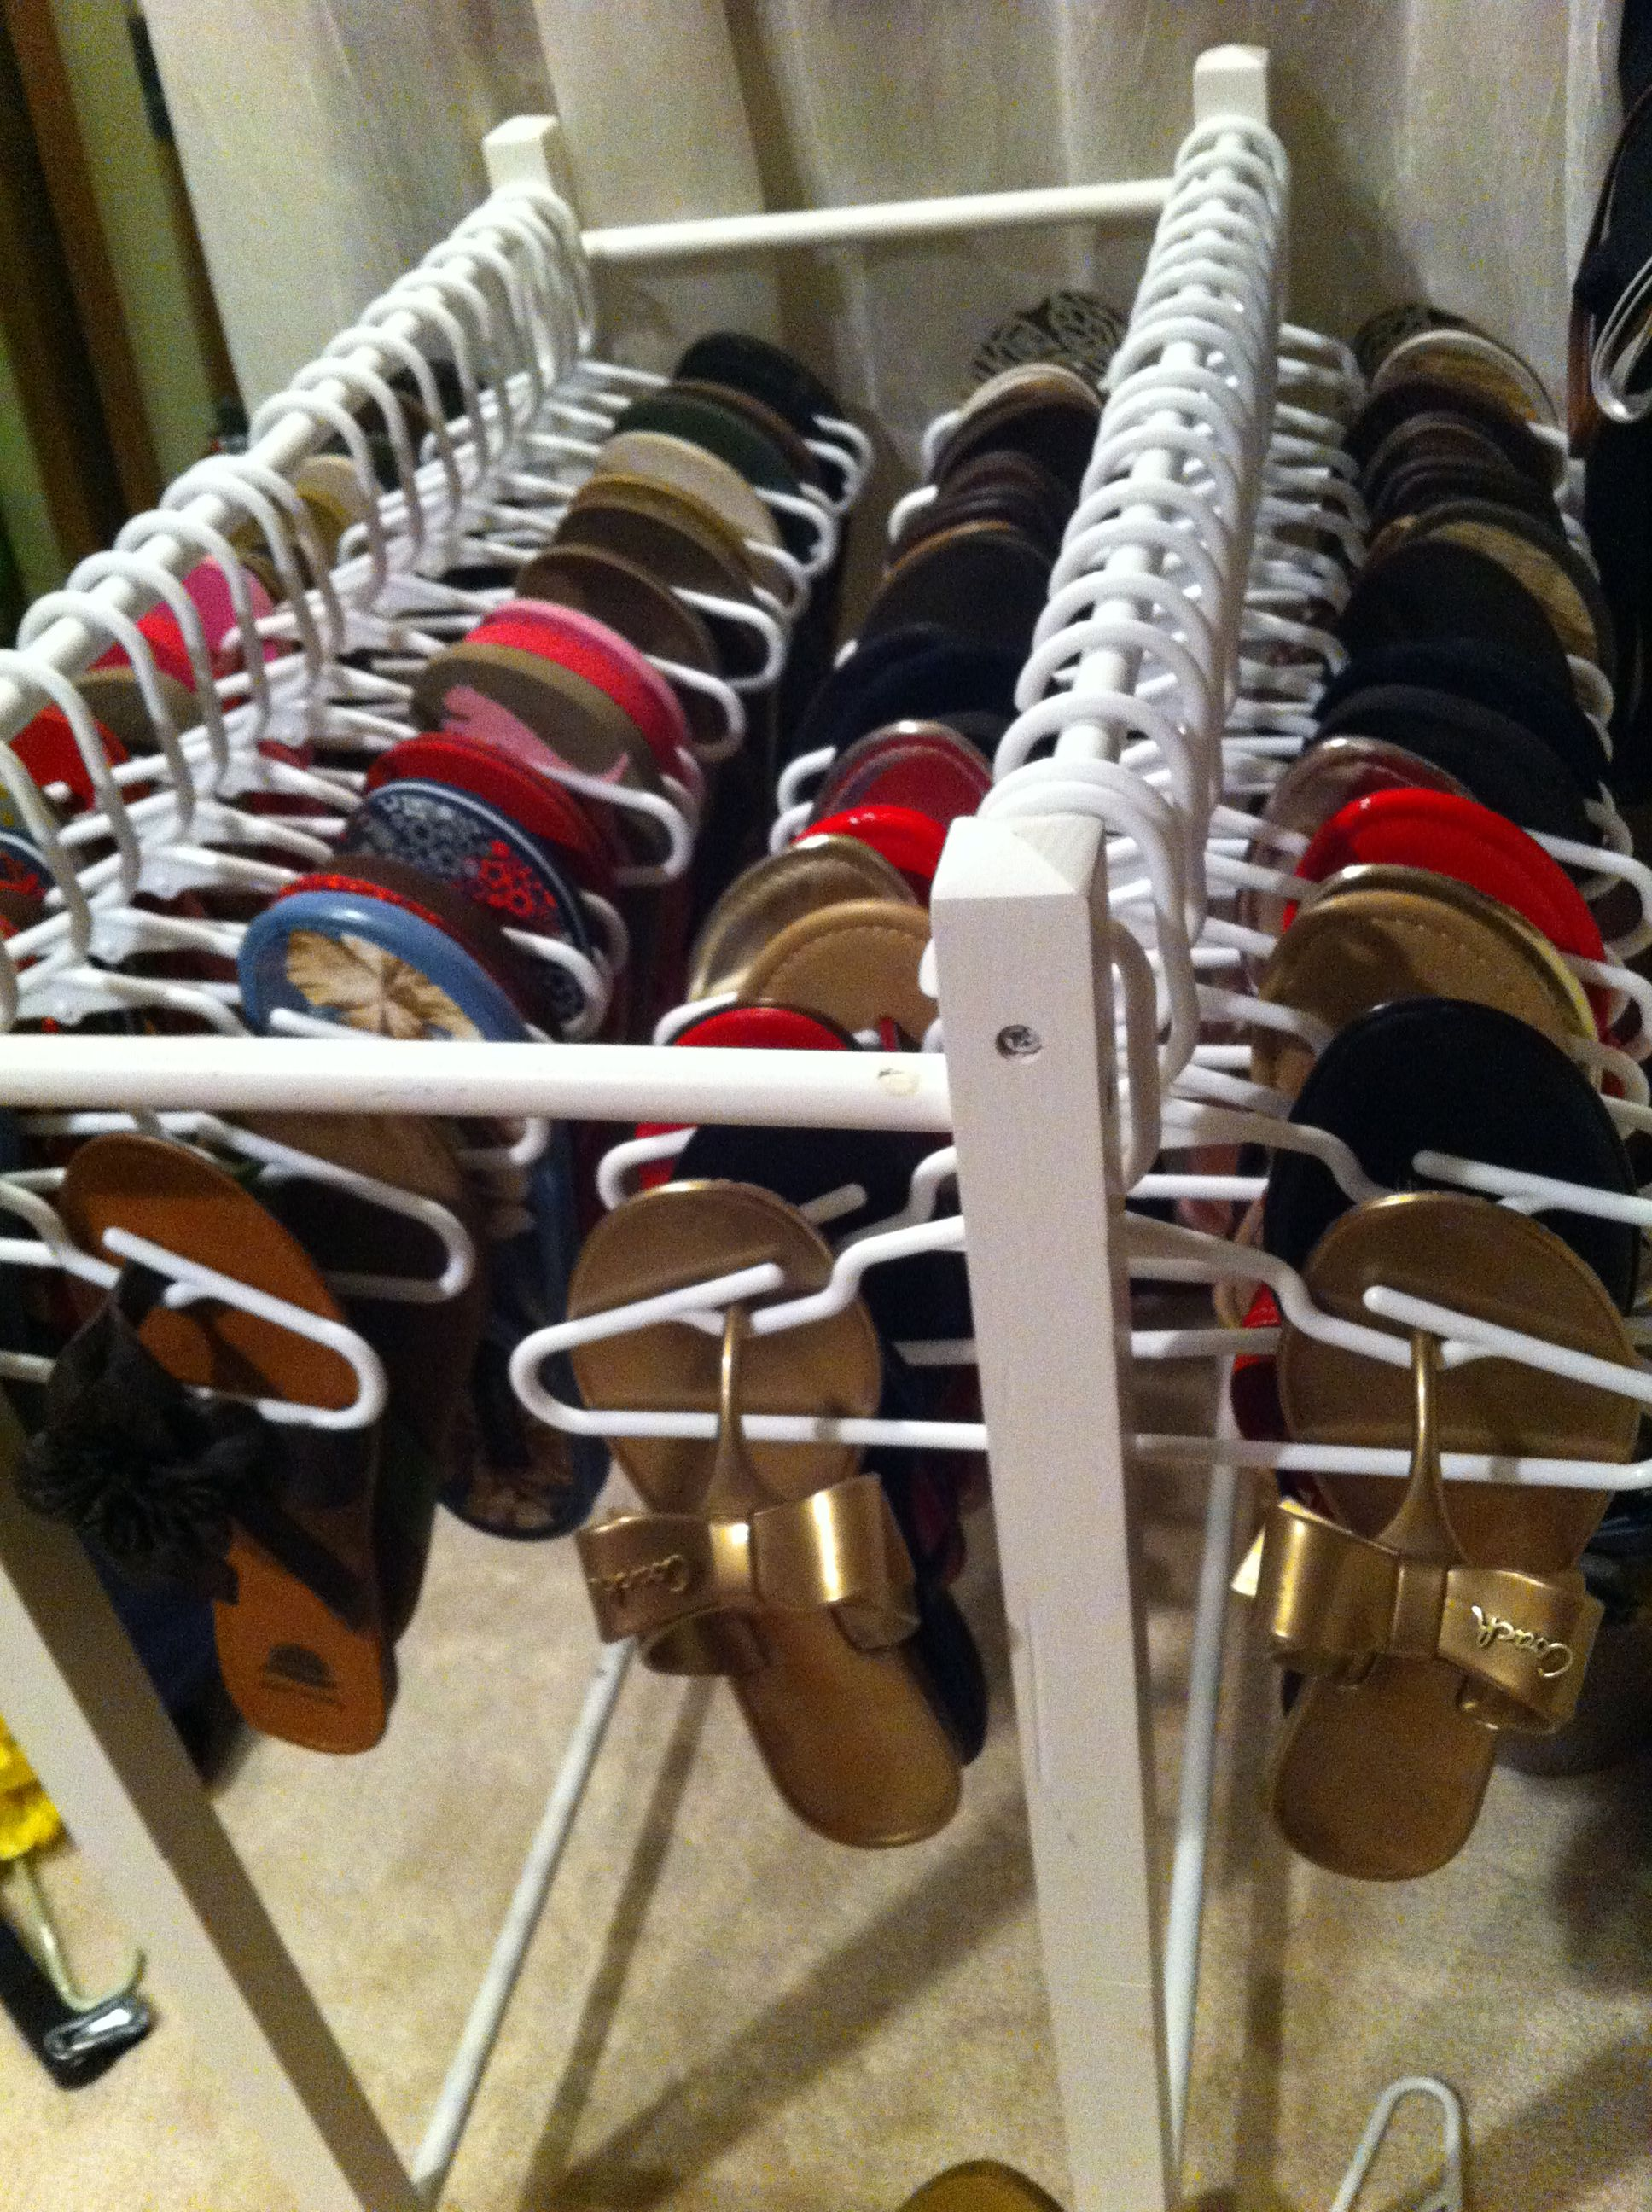 225ac2f34 Flip flop easy access! I don t like wire hangers so the idea of bending 60  coat hangers was too much. I purchased baby toddler hangers for 10  1.25  and used ...